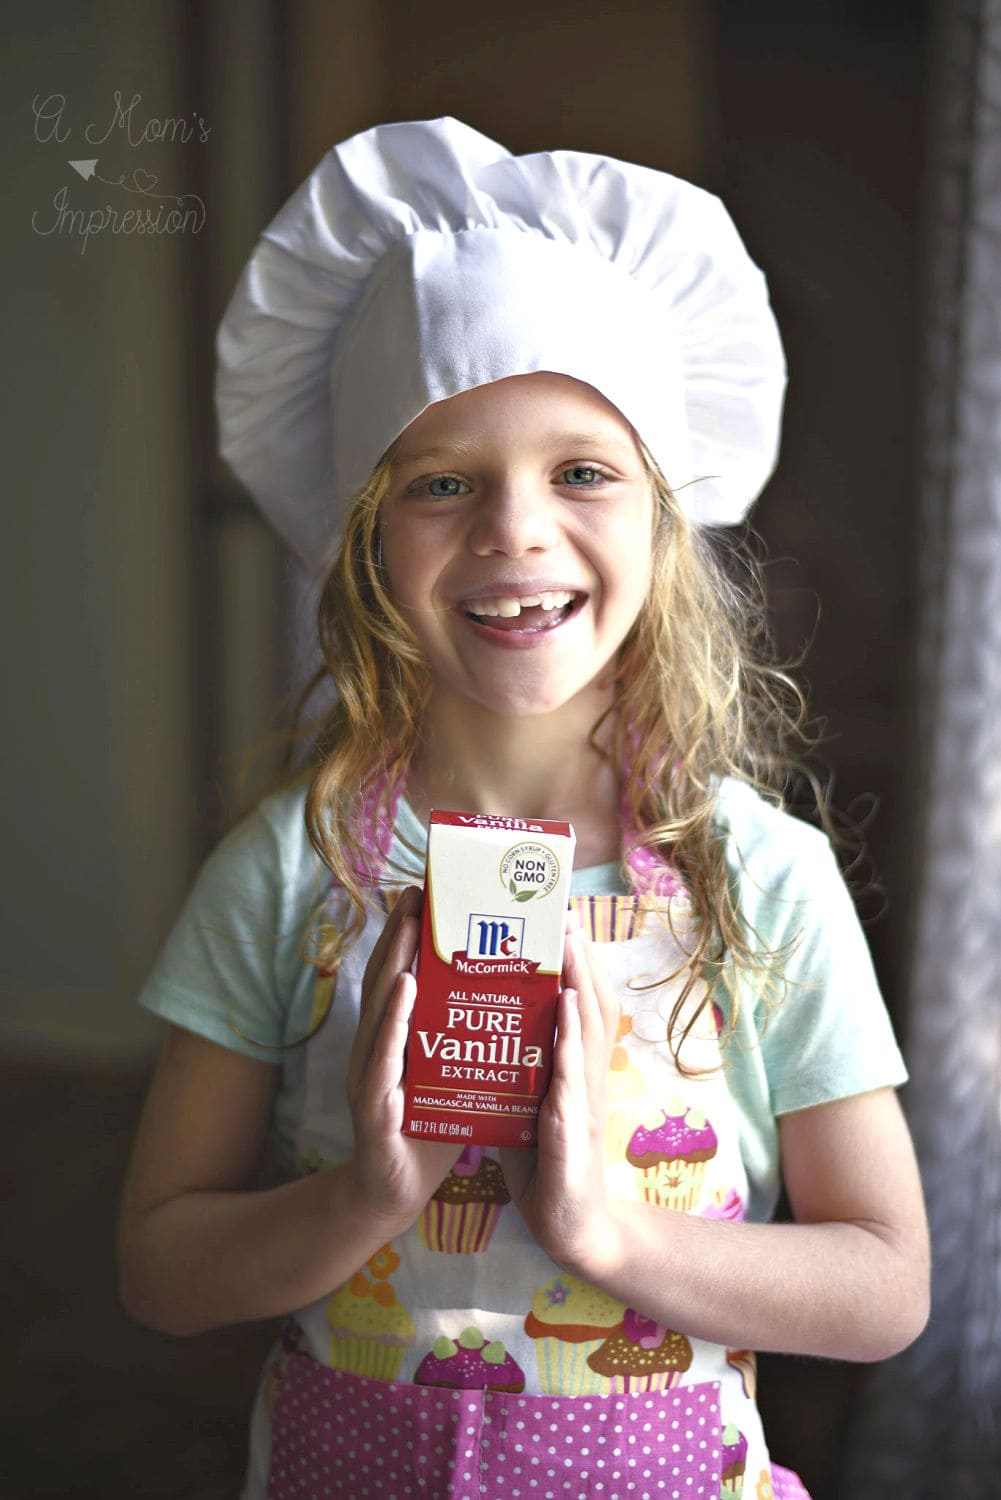 a girl in a chefs hat holding mccormicks spices